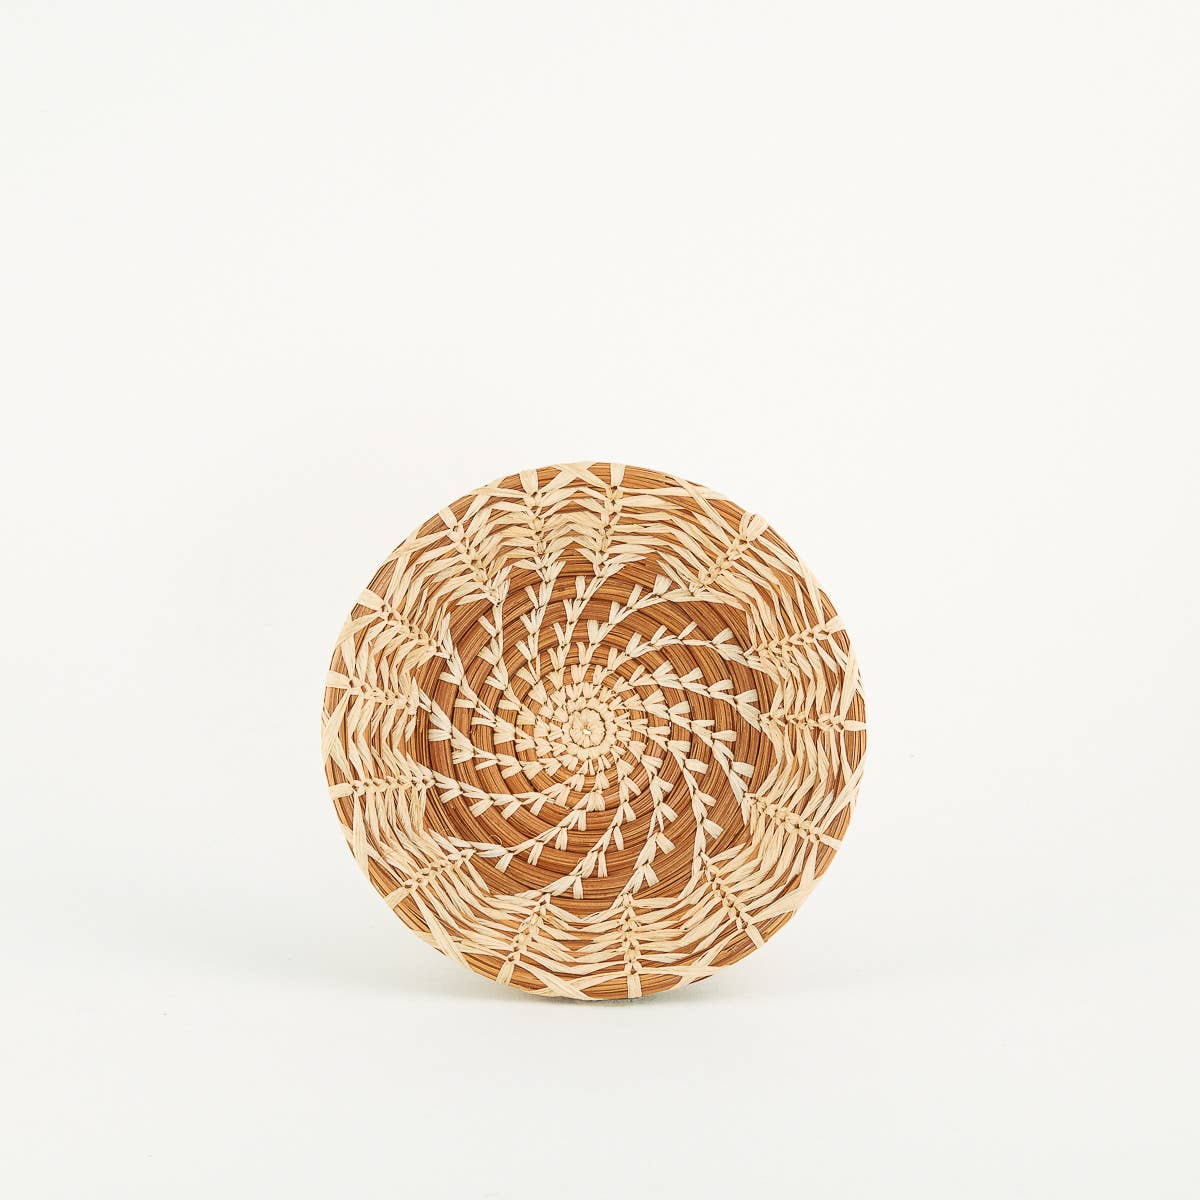 fair trade pajon grass, pine needle and raffia hand woven basket wall hanging